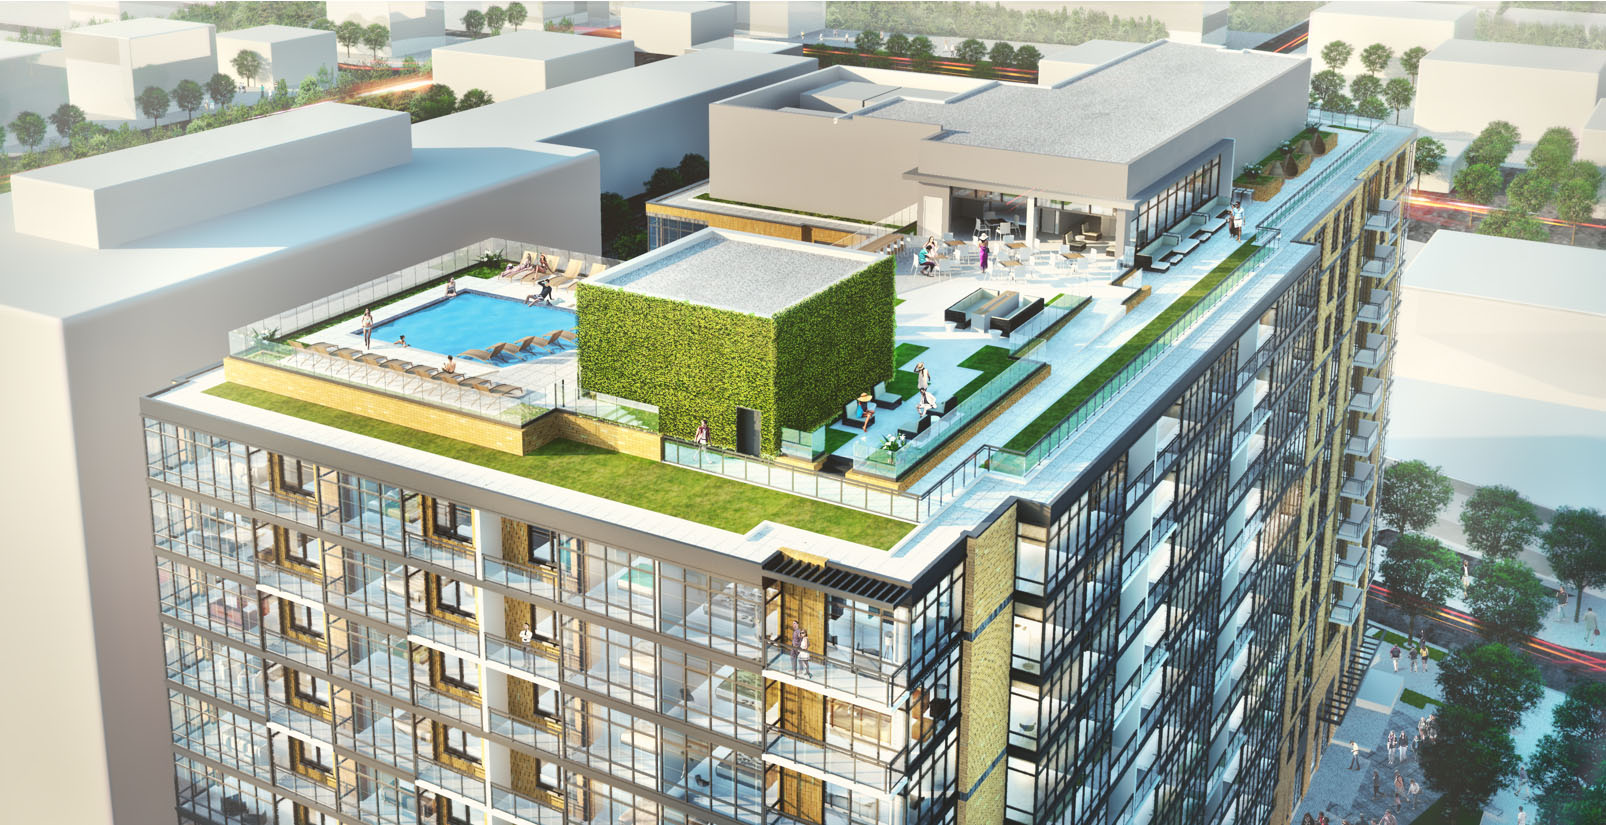 A rendering of the Insignia on M, which boasts a penthouse-level bar, that includes a bar, pool table, living area, grilling stations as well as a rooftop pool and gardens -- in addition to 24-hour concierge service.  (Courtesy Donohoe)